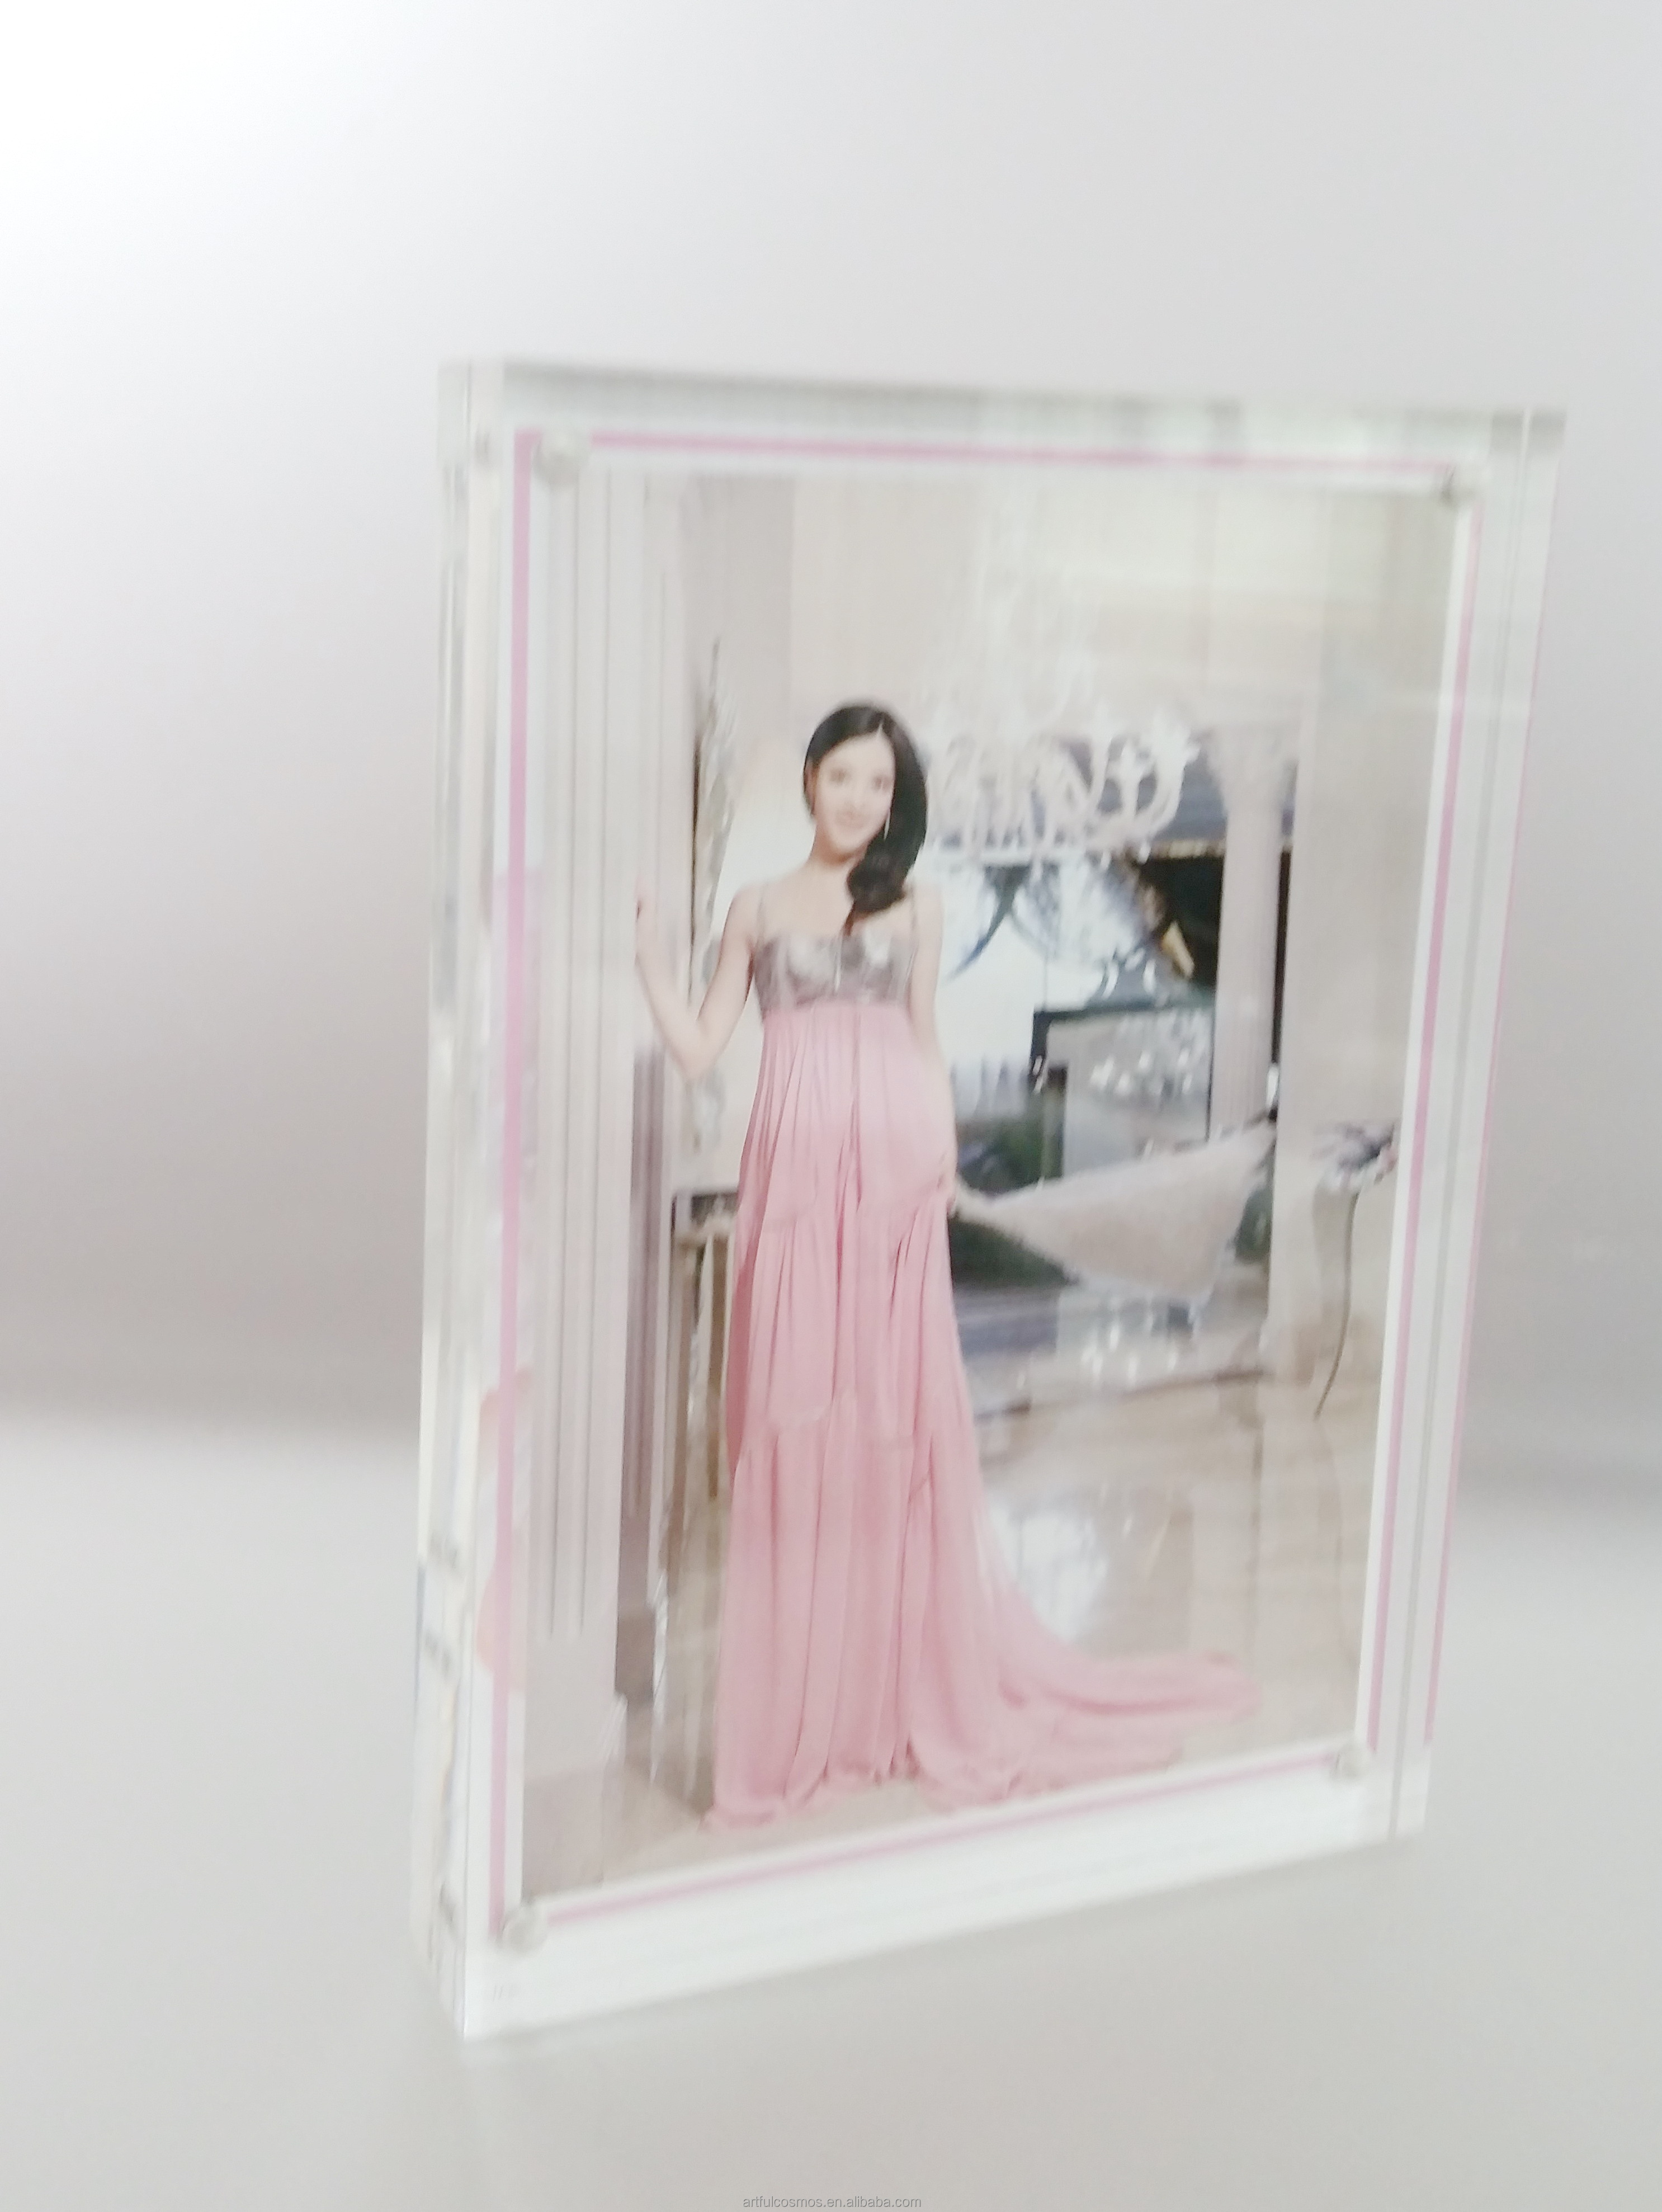 New arrival round shape acrylic photo frame advertising trucks for sale hospital 26Inch Screen